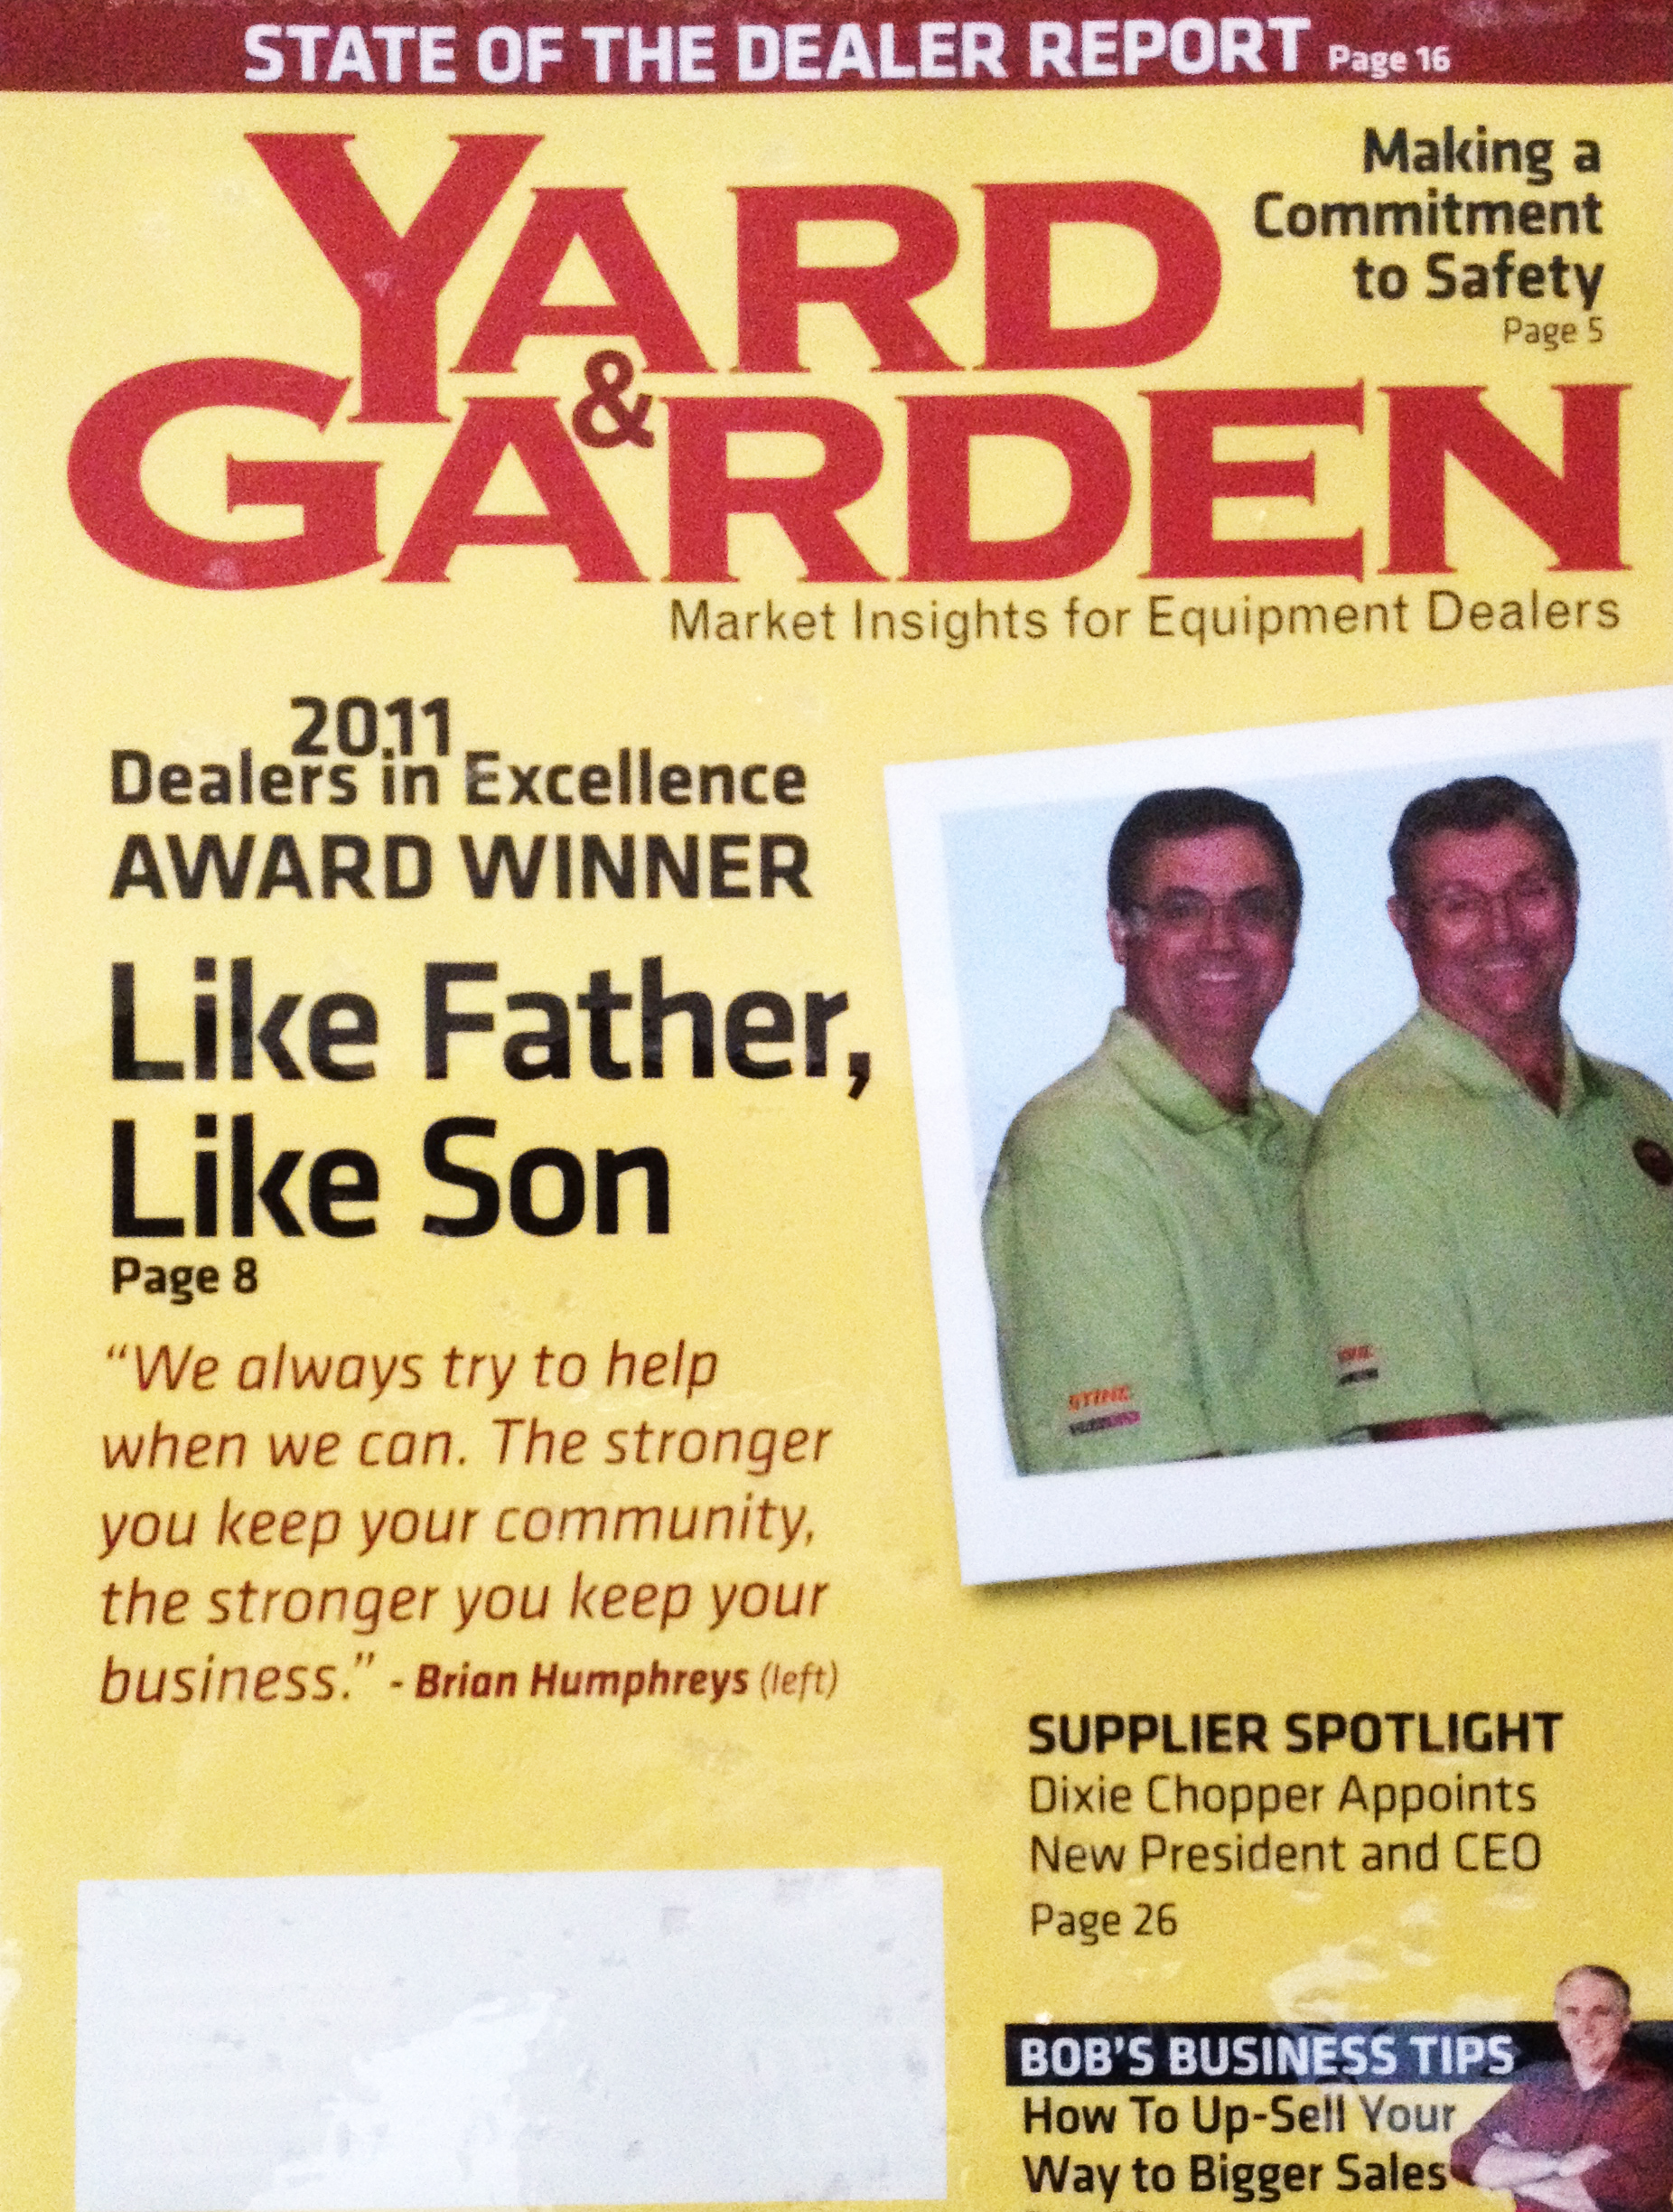 In 2011 Yard and Garden named Humphreys' Dealer of the year!